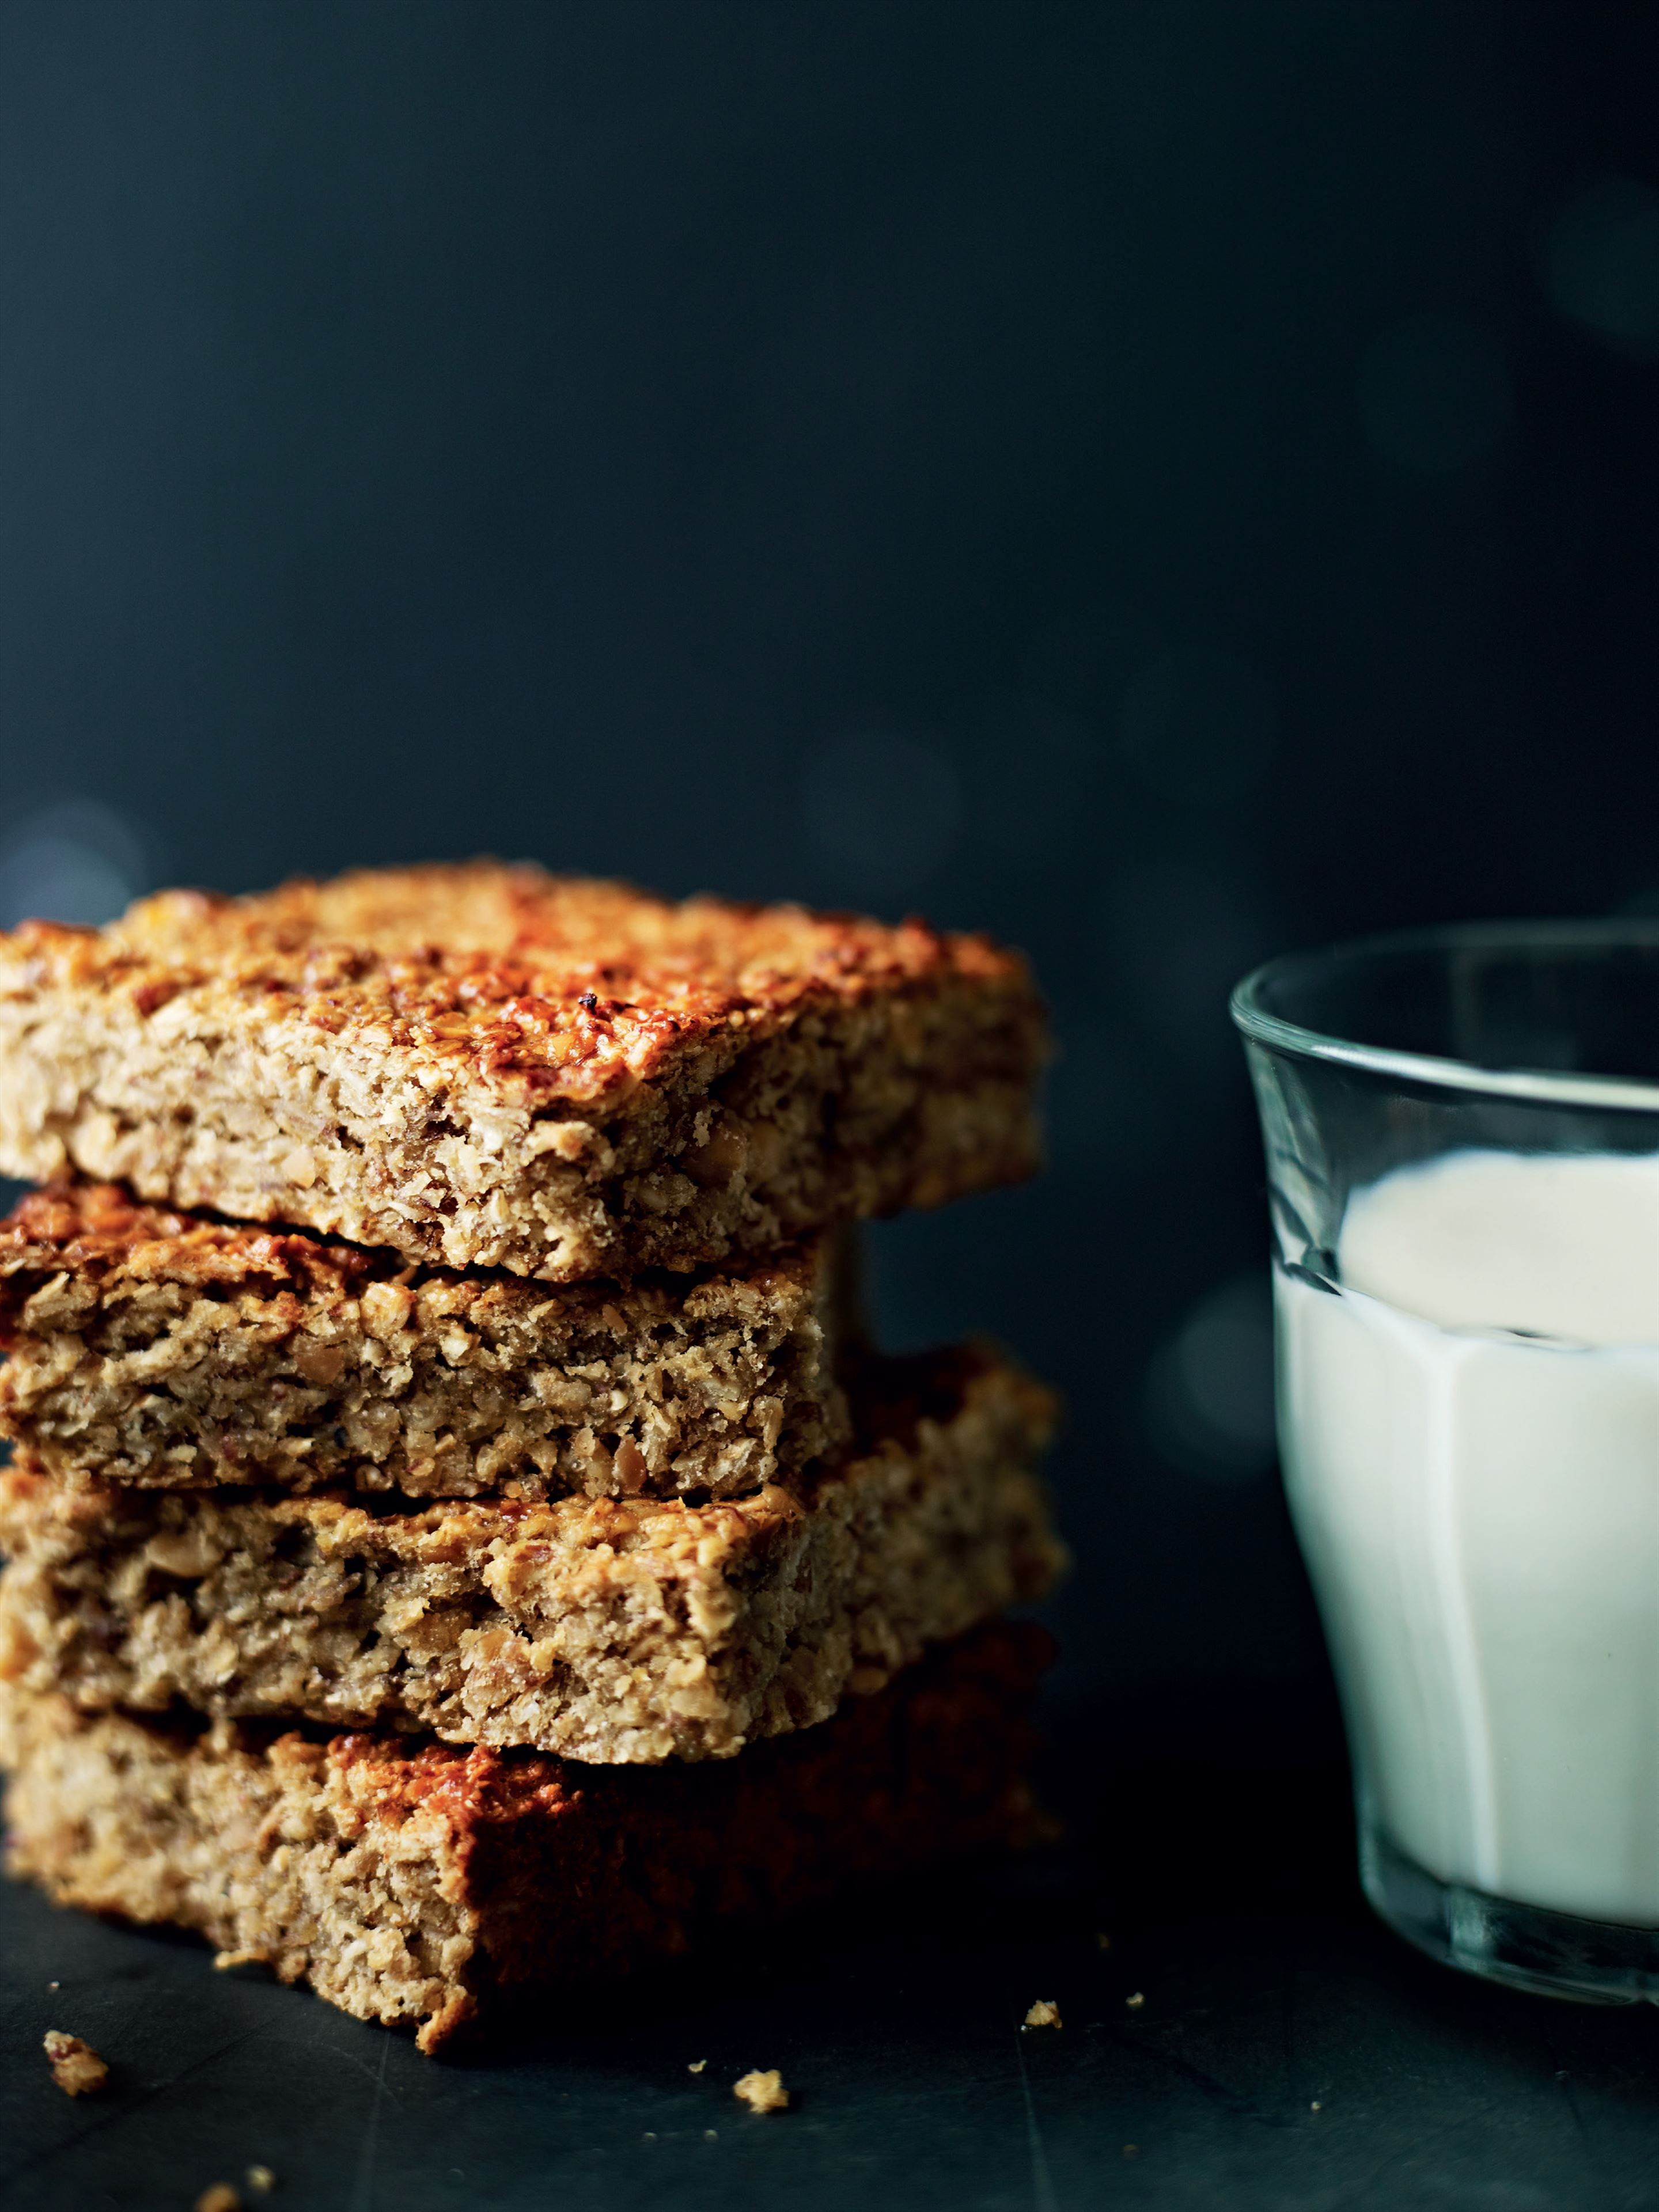 Banana-peanut oat bars